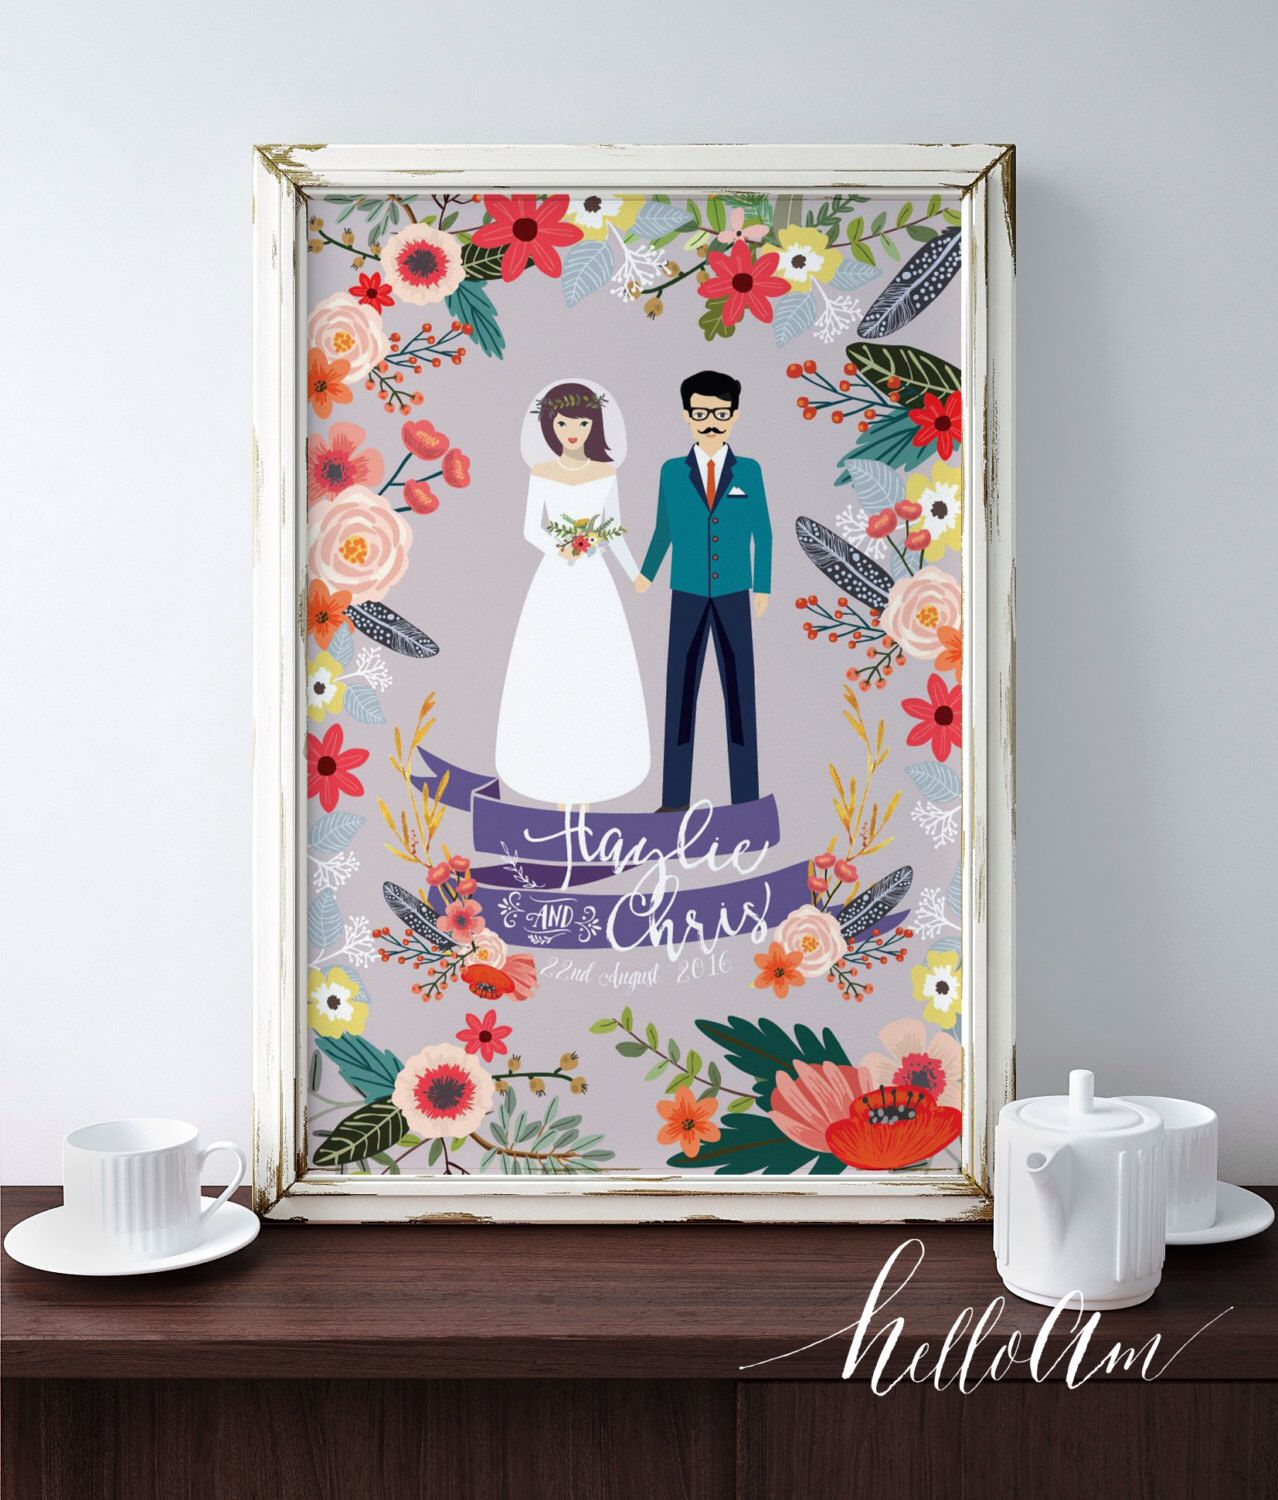 Gift For Bride Engagement Anniversary Gifts Her 2016 Best Wives